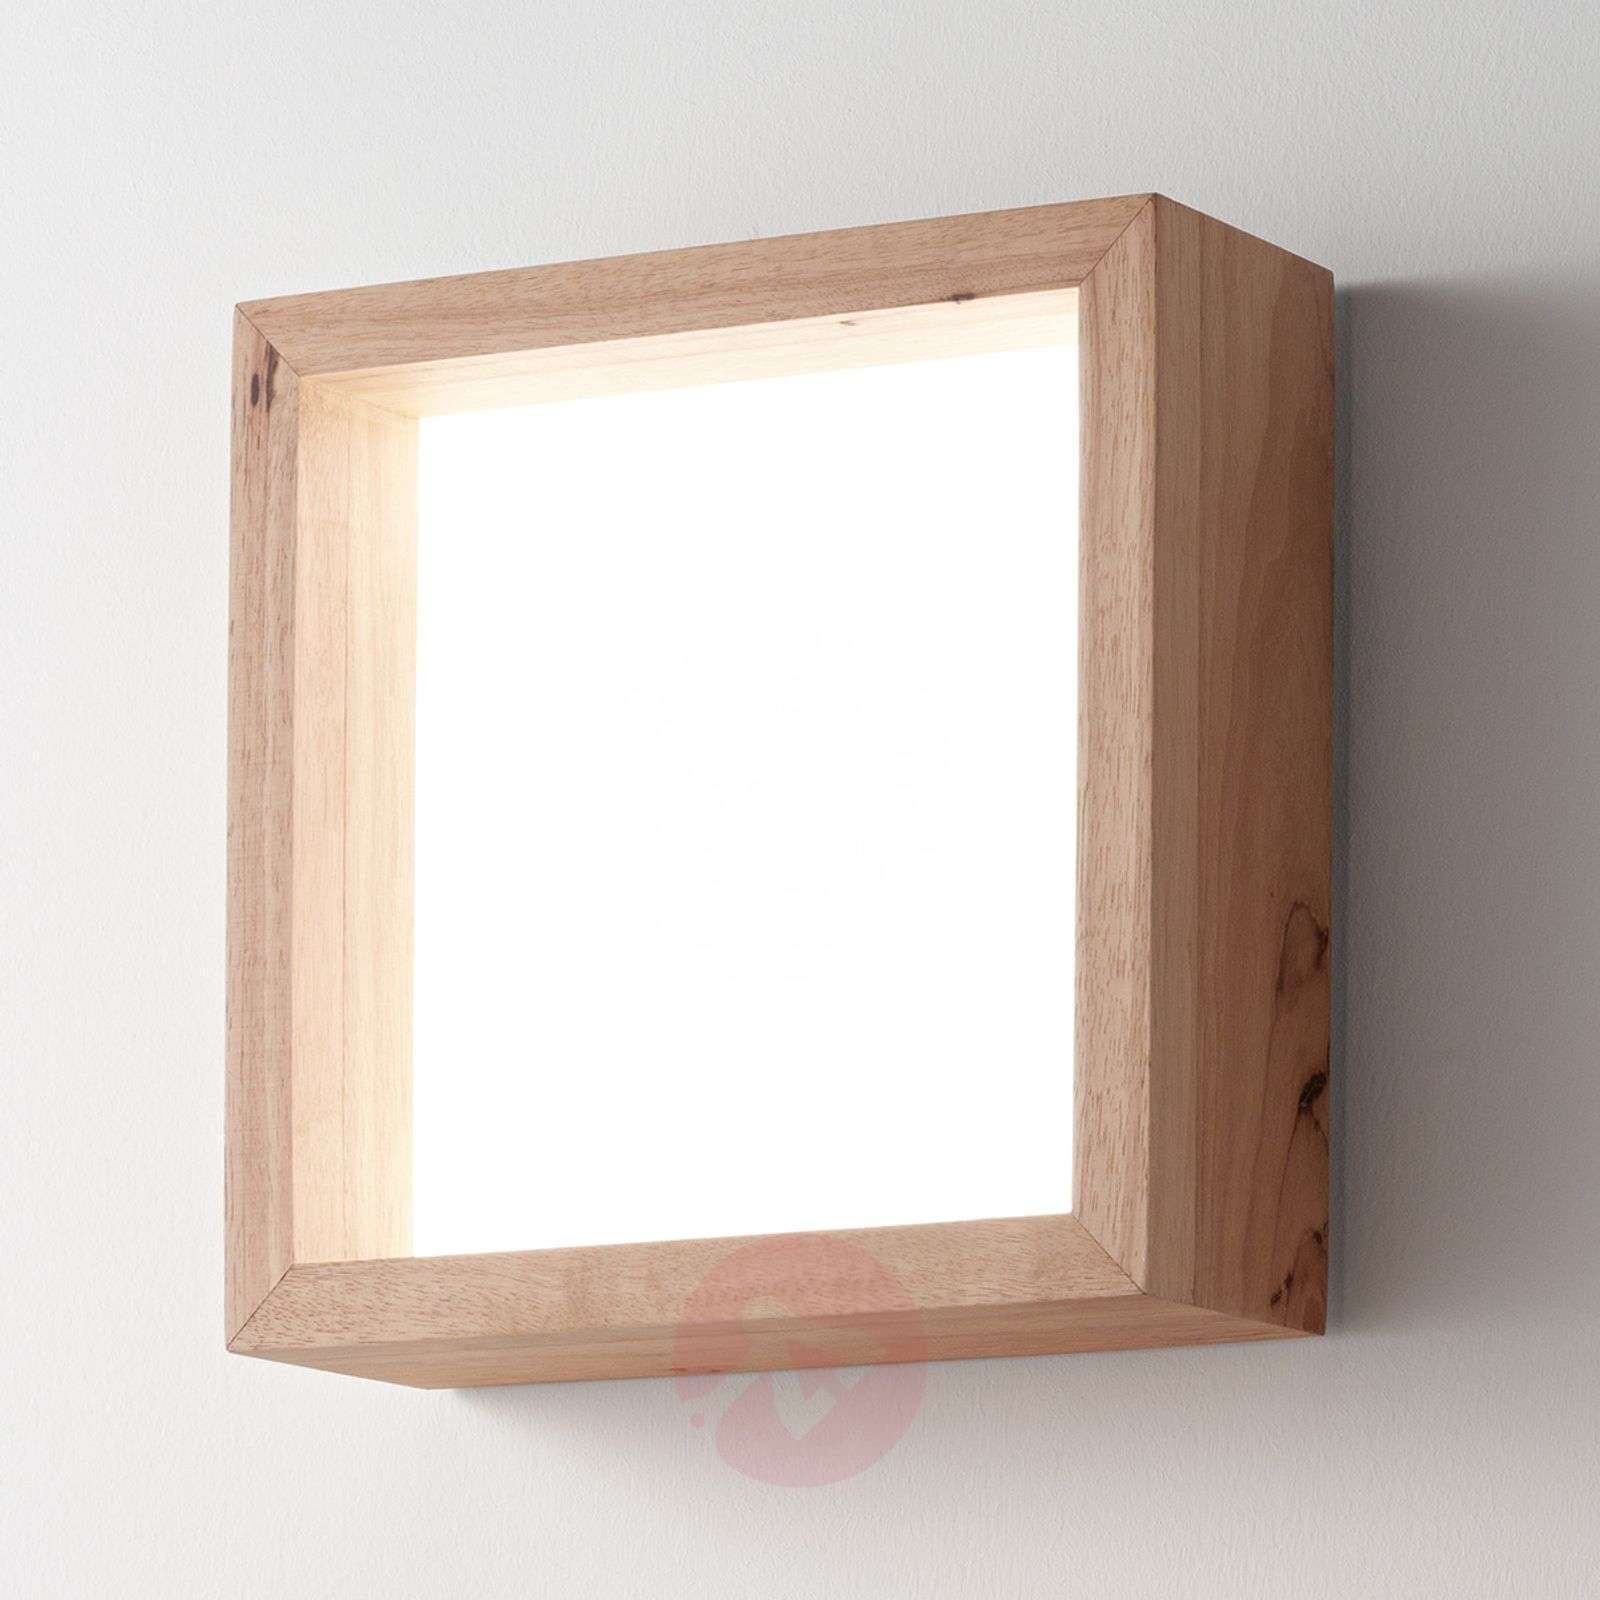 Applique murale LED carrée Window en chêne-3502645-01